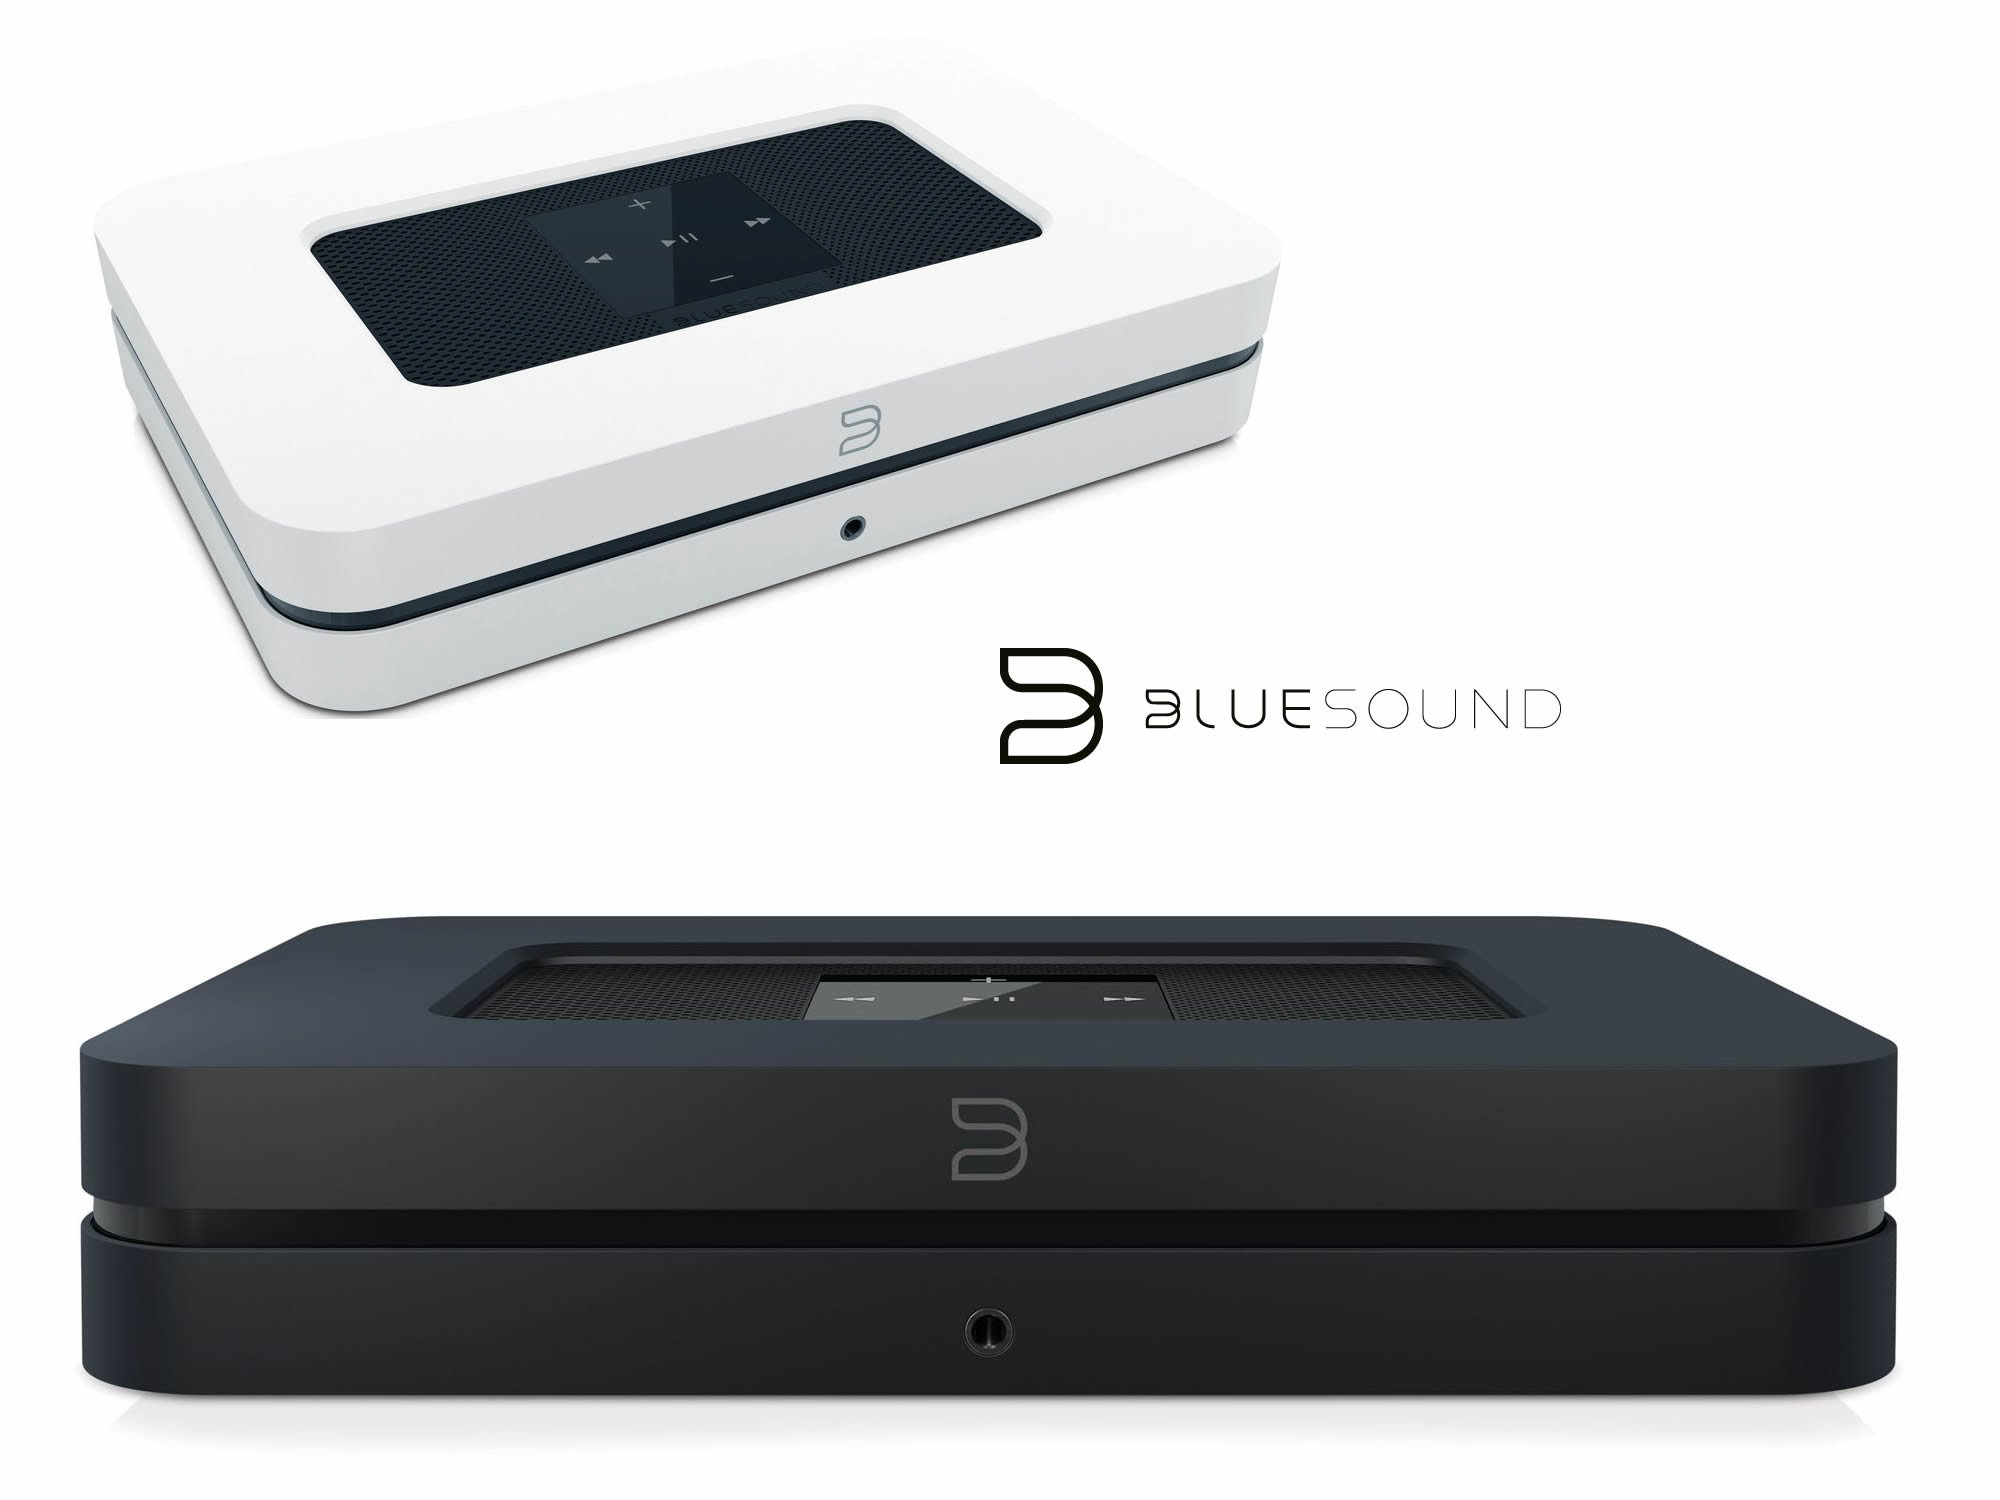 Den Bluesound Node 2 Streaming Client kauft man beim AkustikTUne Hifi Fachhandel